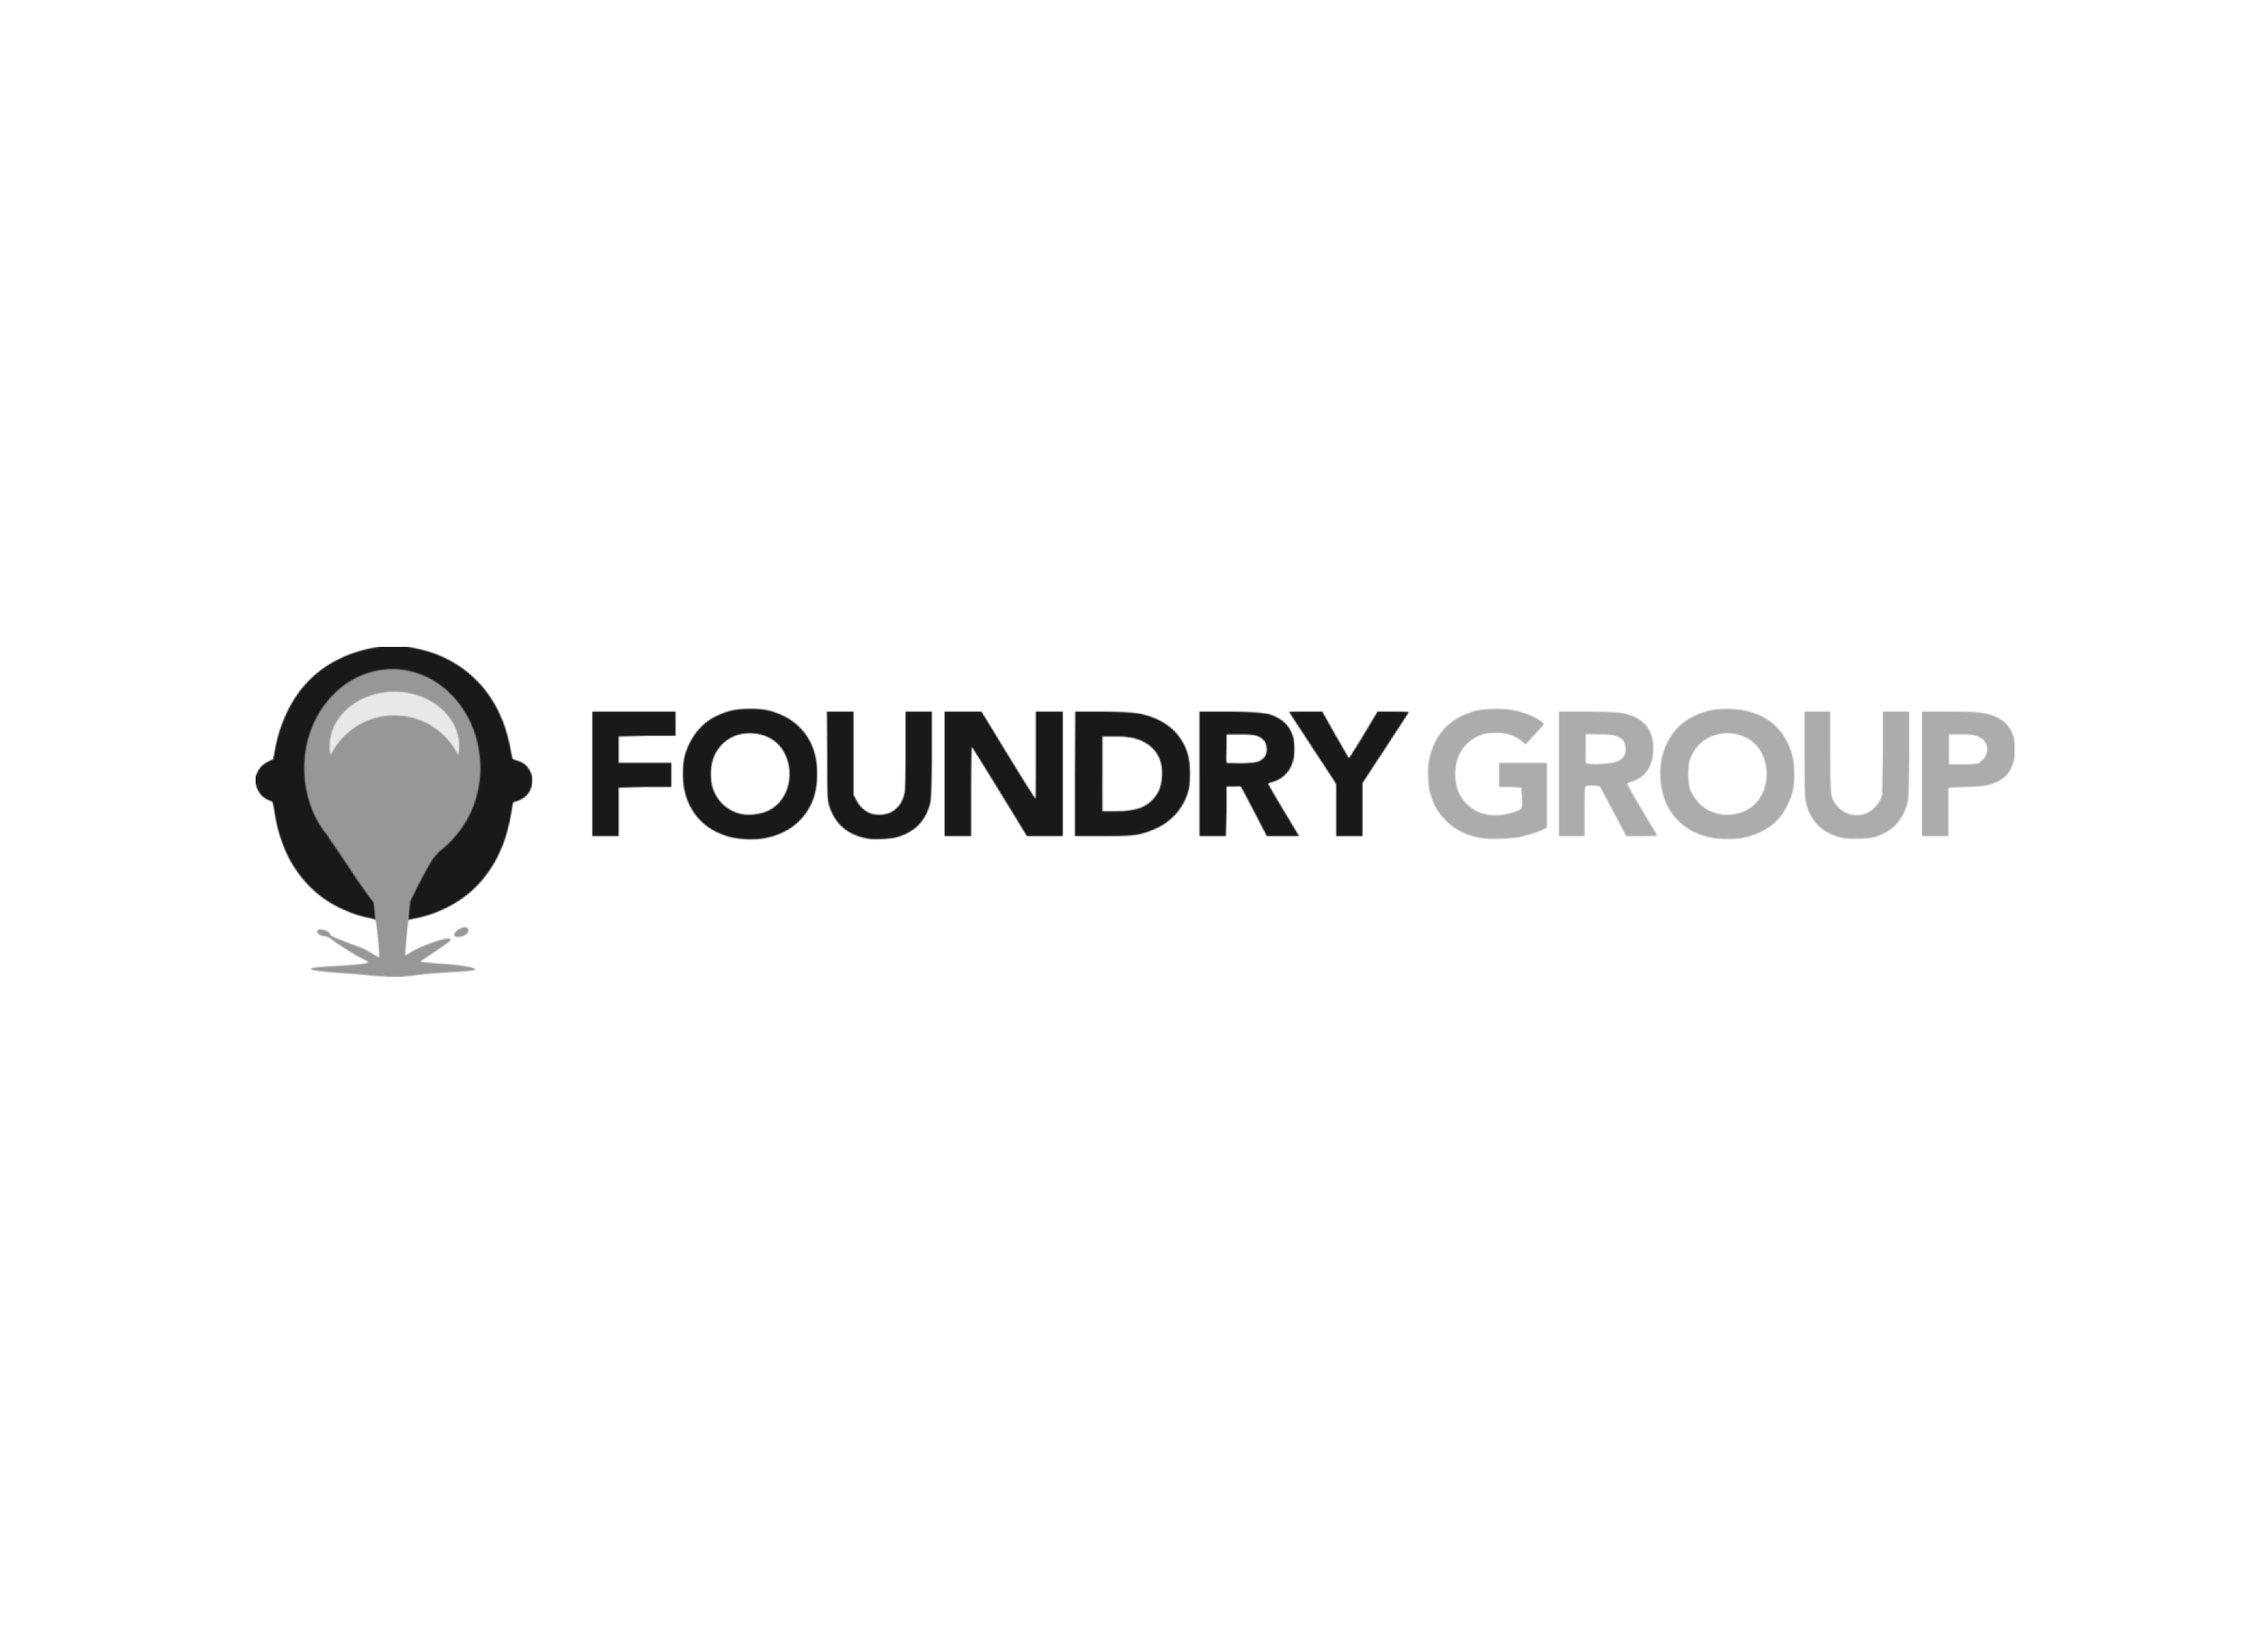 Foundry Group company logo